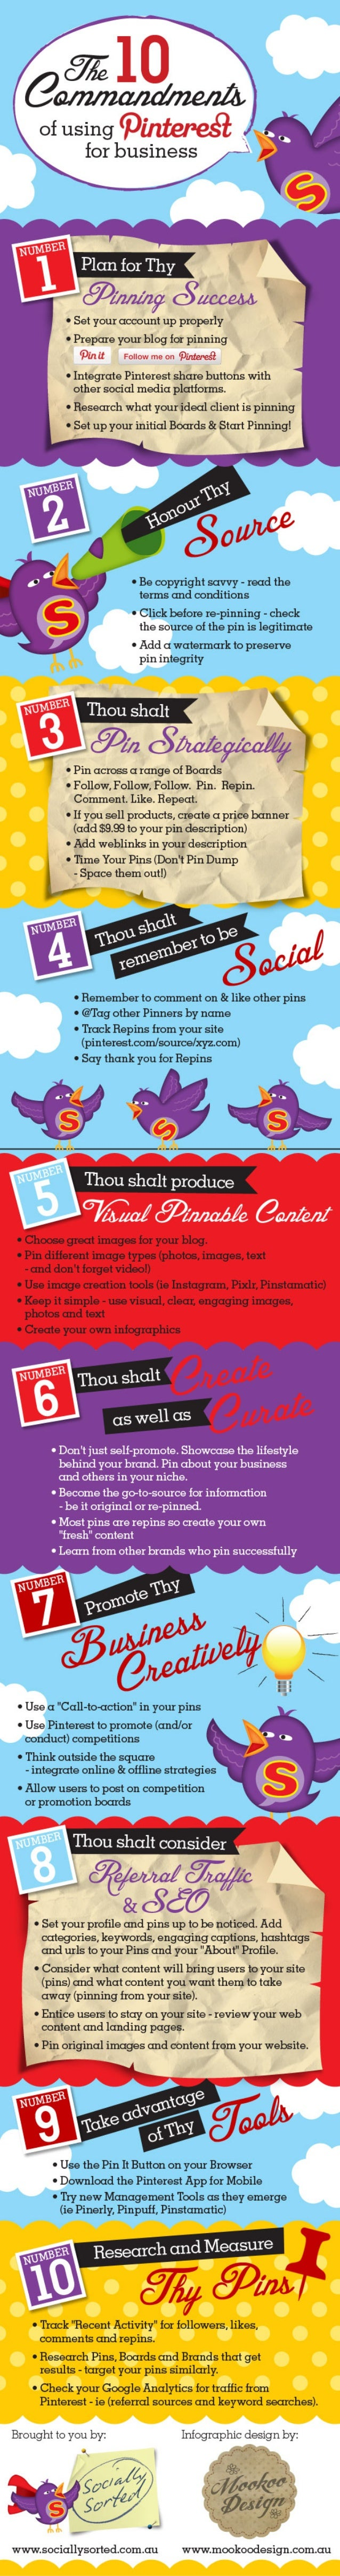 The 10 Commandments of Using Pinterest for Business - Infographic